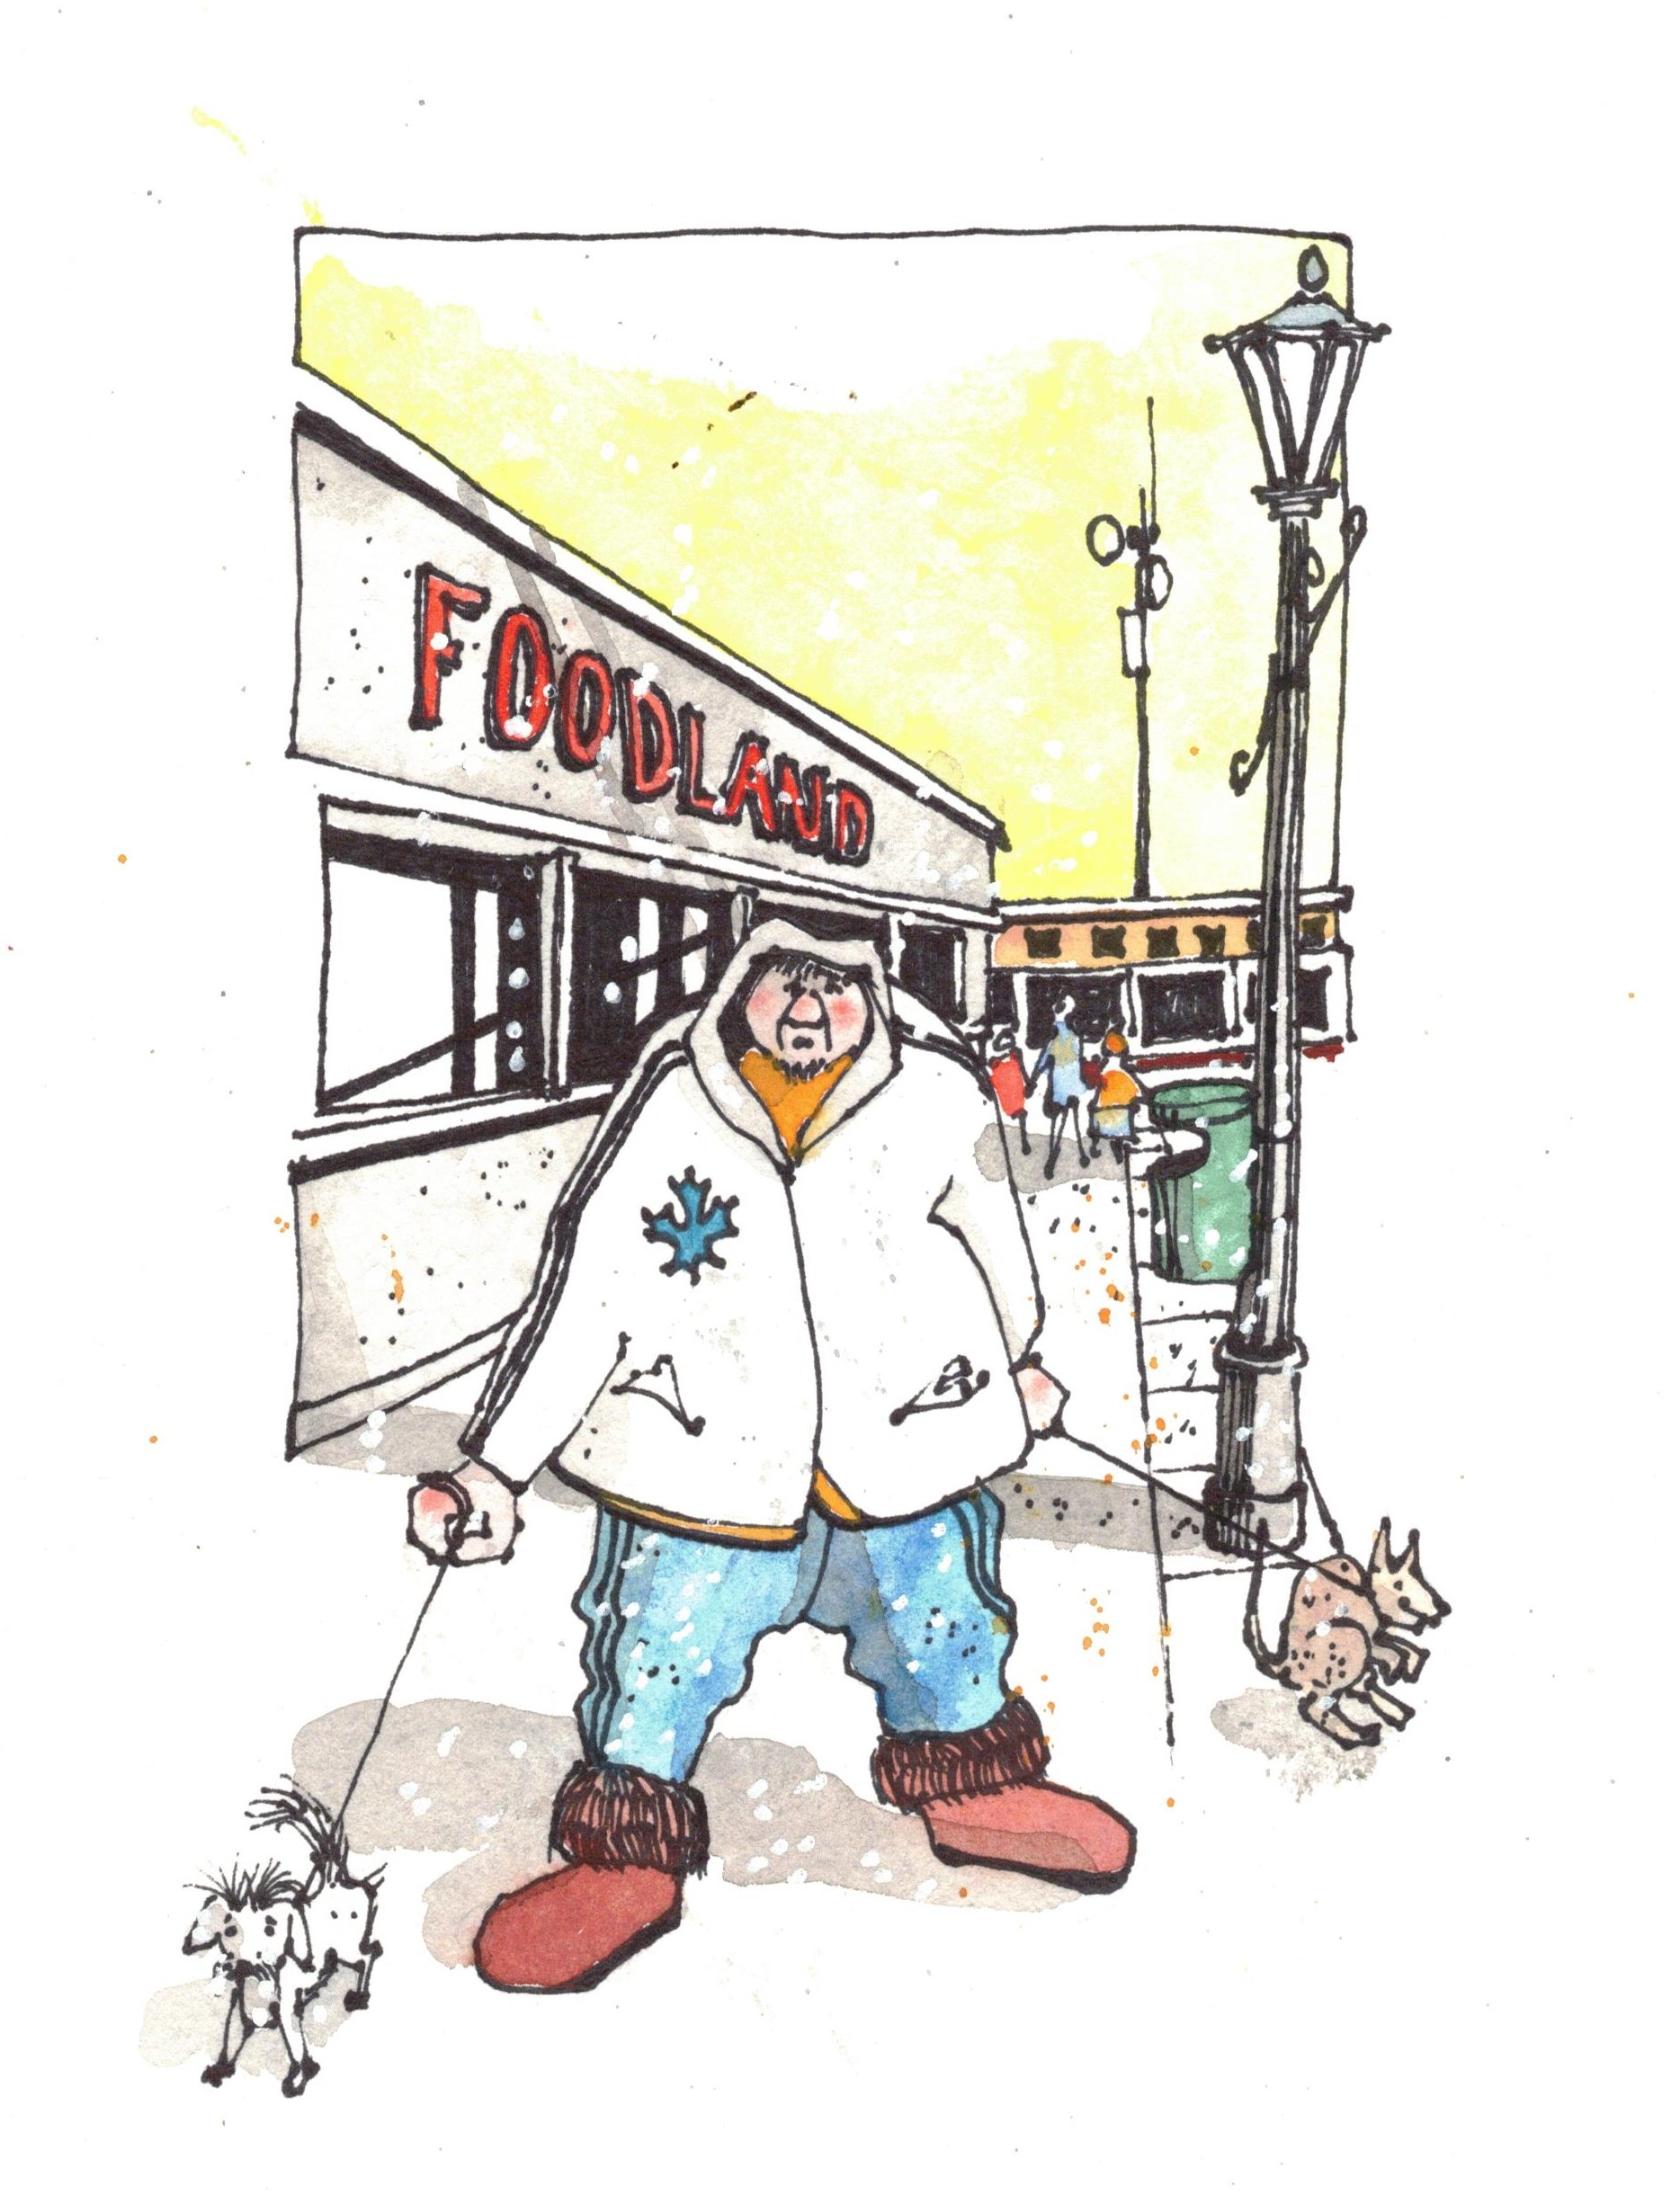 Artwork of a man standing on the sidewalk at foodland walking two small dogs